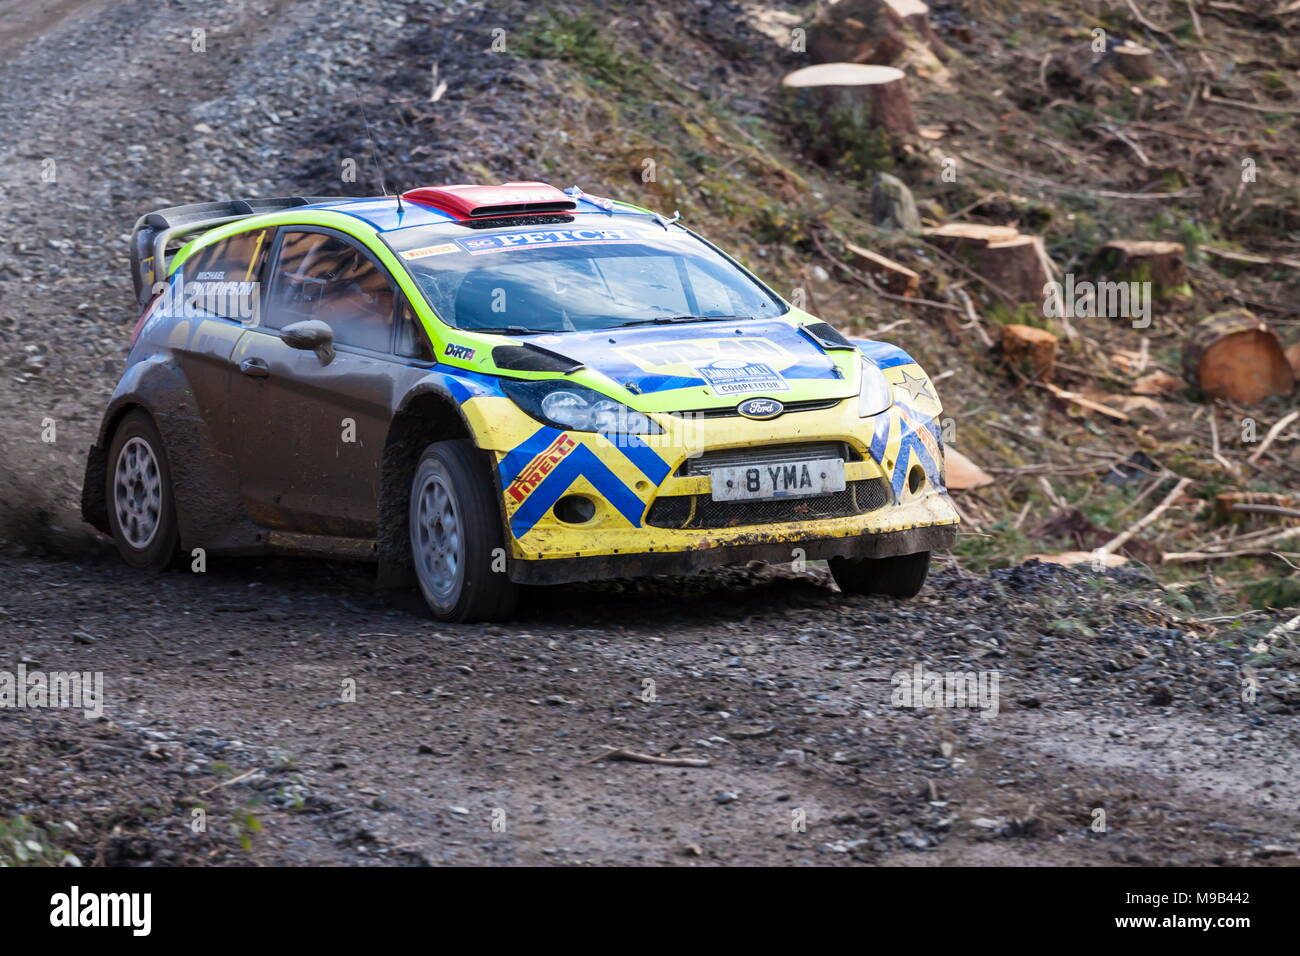 A Ford Fiesta rally car speeds around a corner in the Gwydr forest - Stock Image